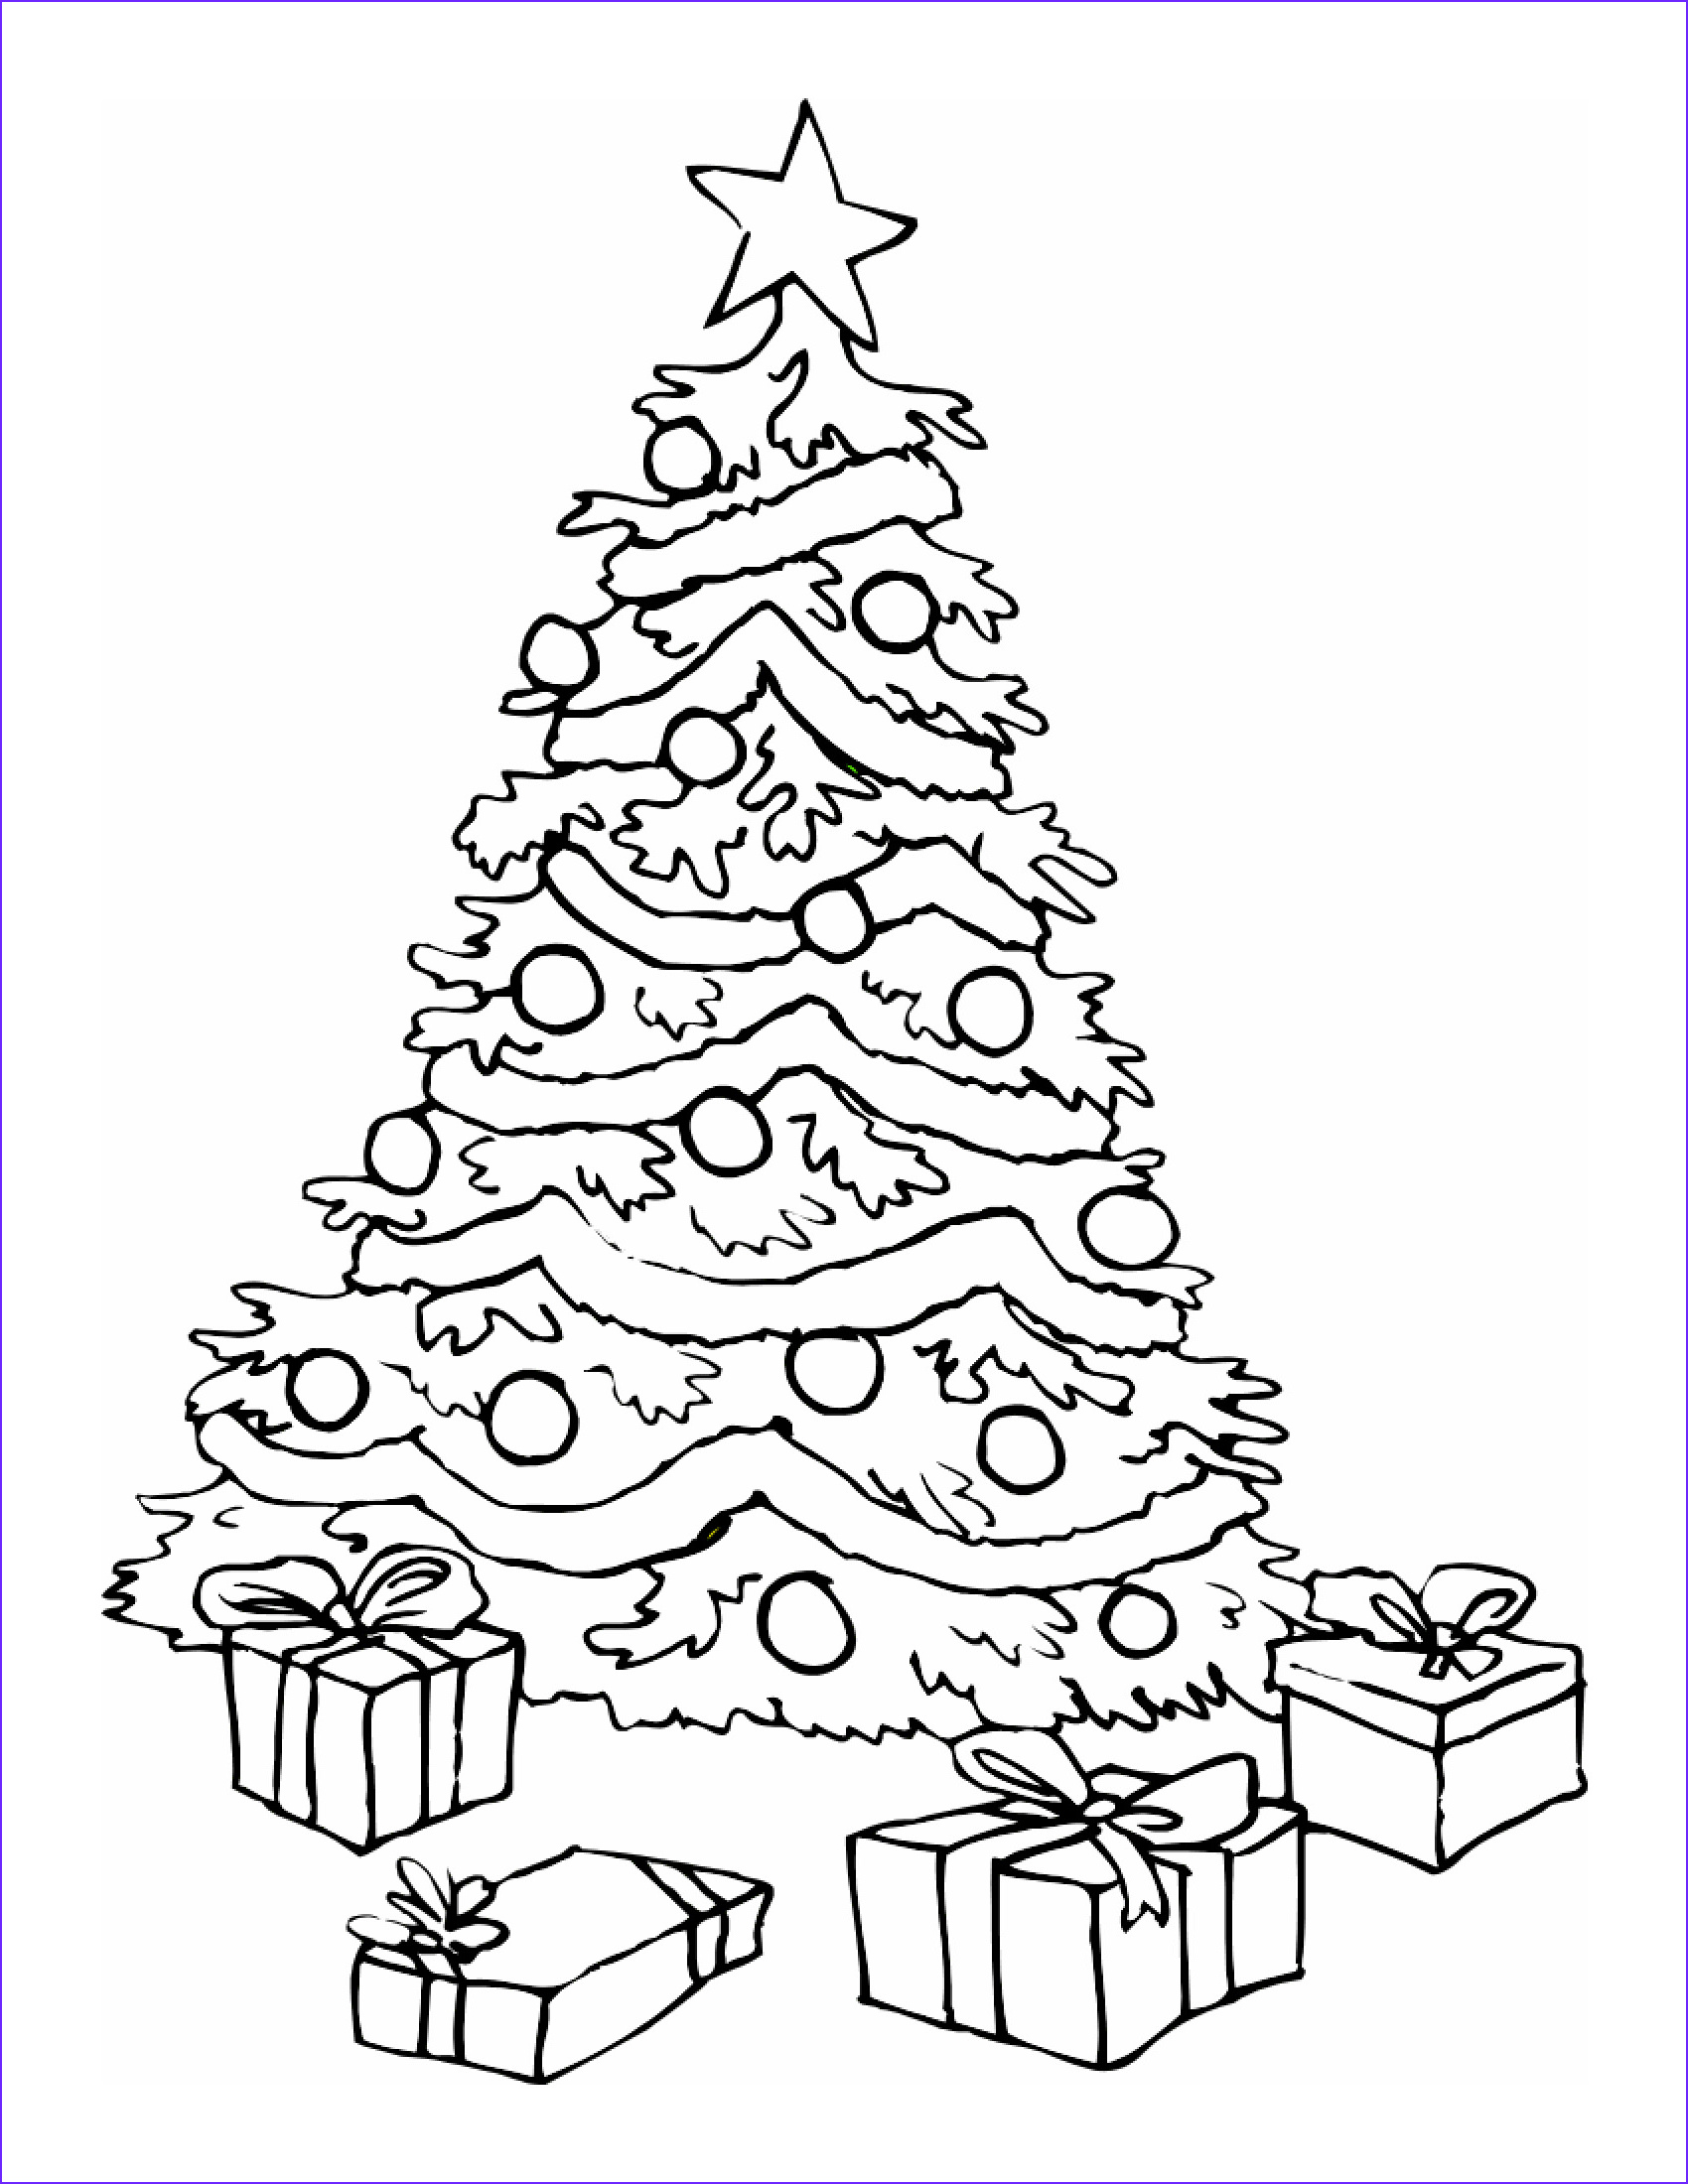 Christmas Tree Coloring Luxury Image Crafts